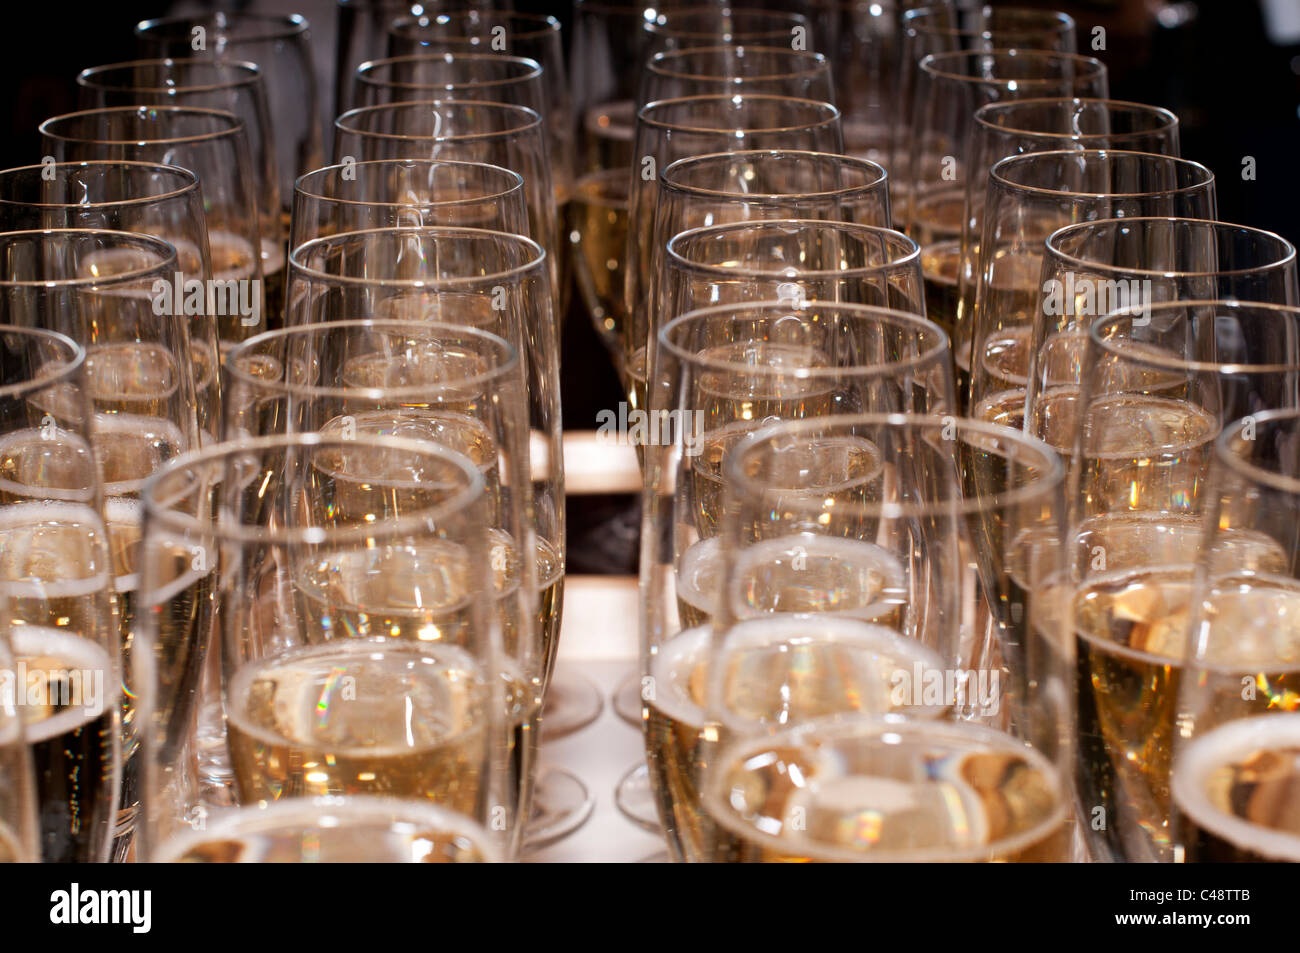 Champagne flute glasses filled with Champagne - Stock Image